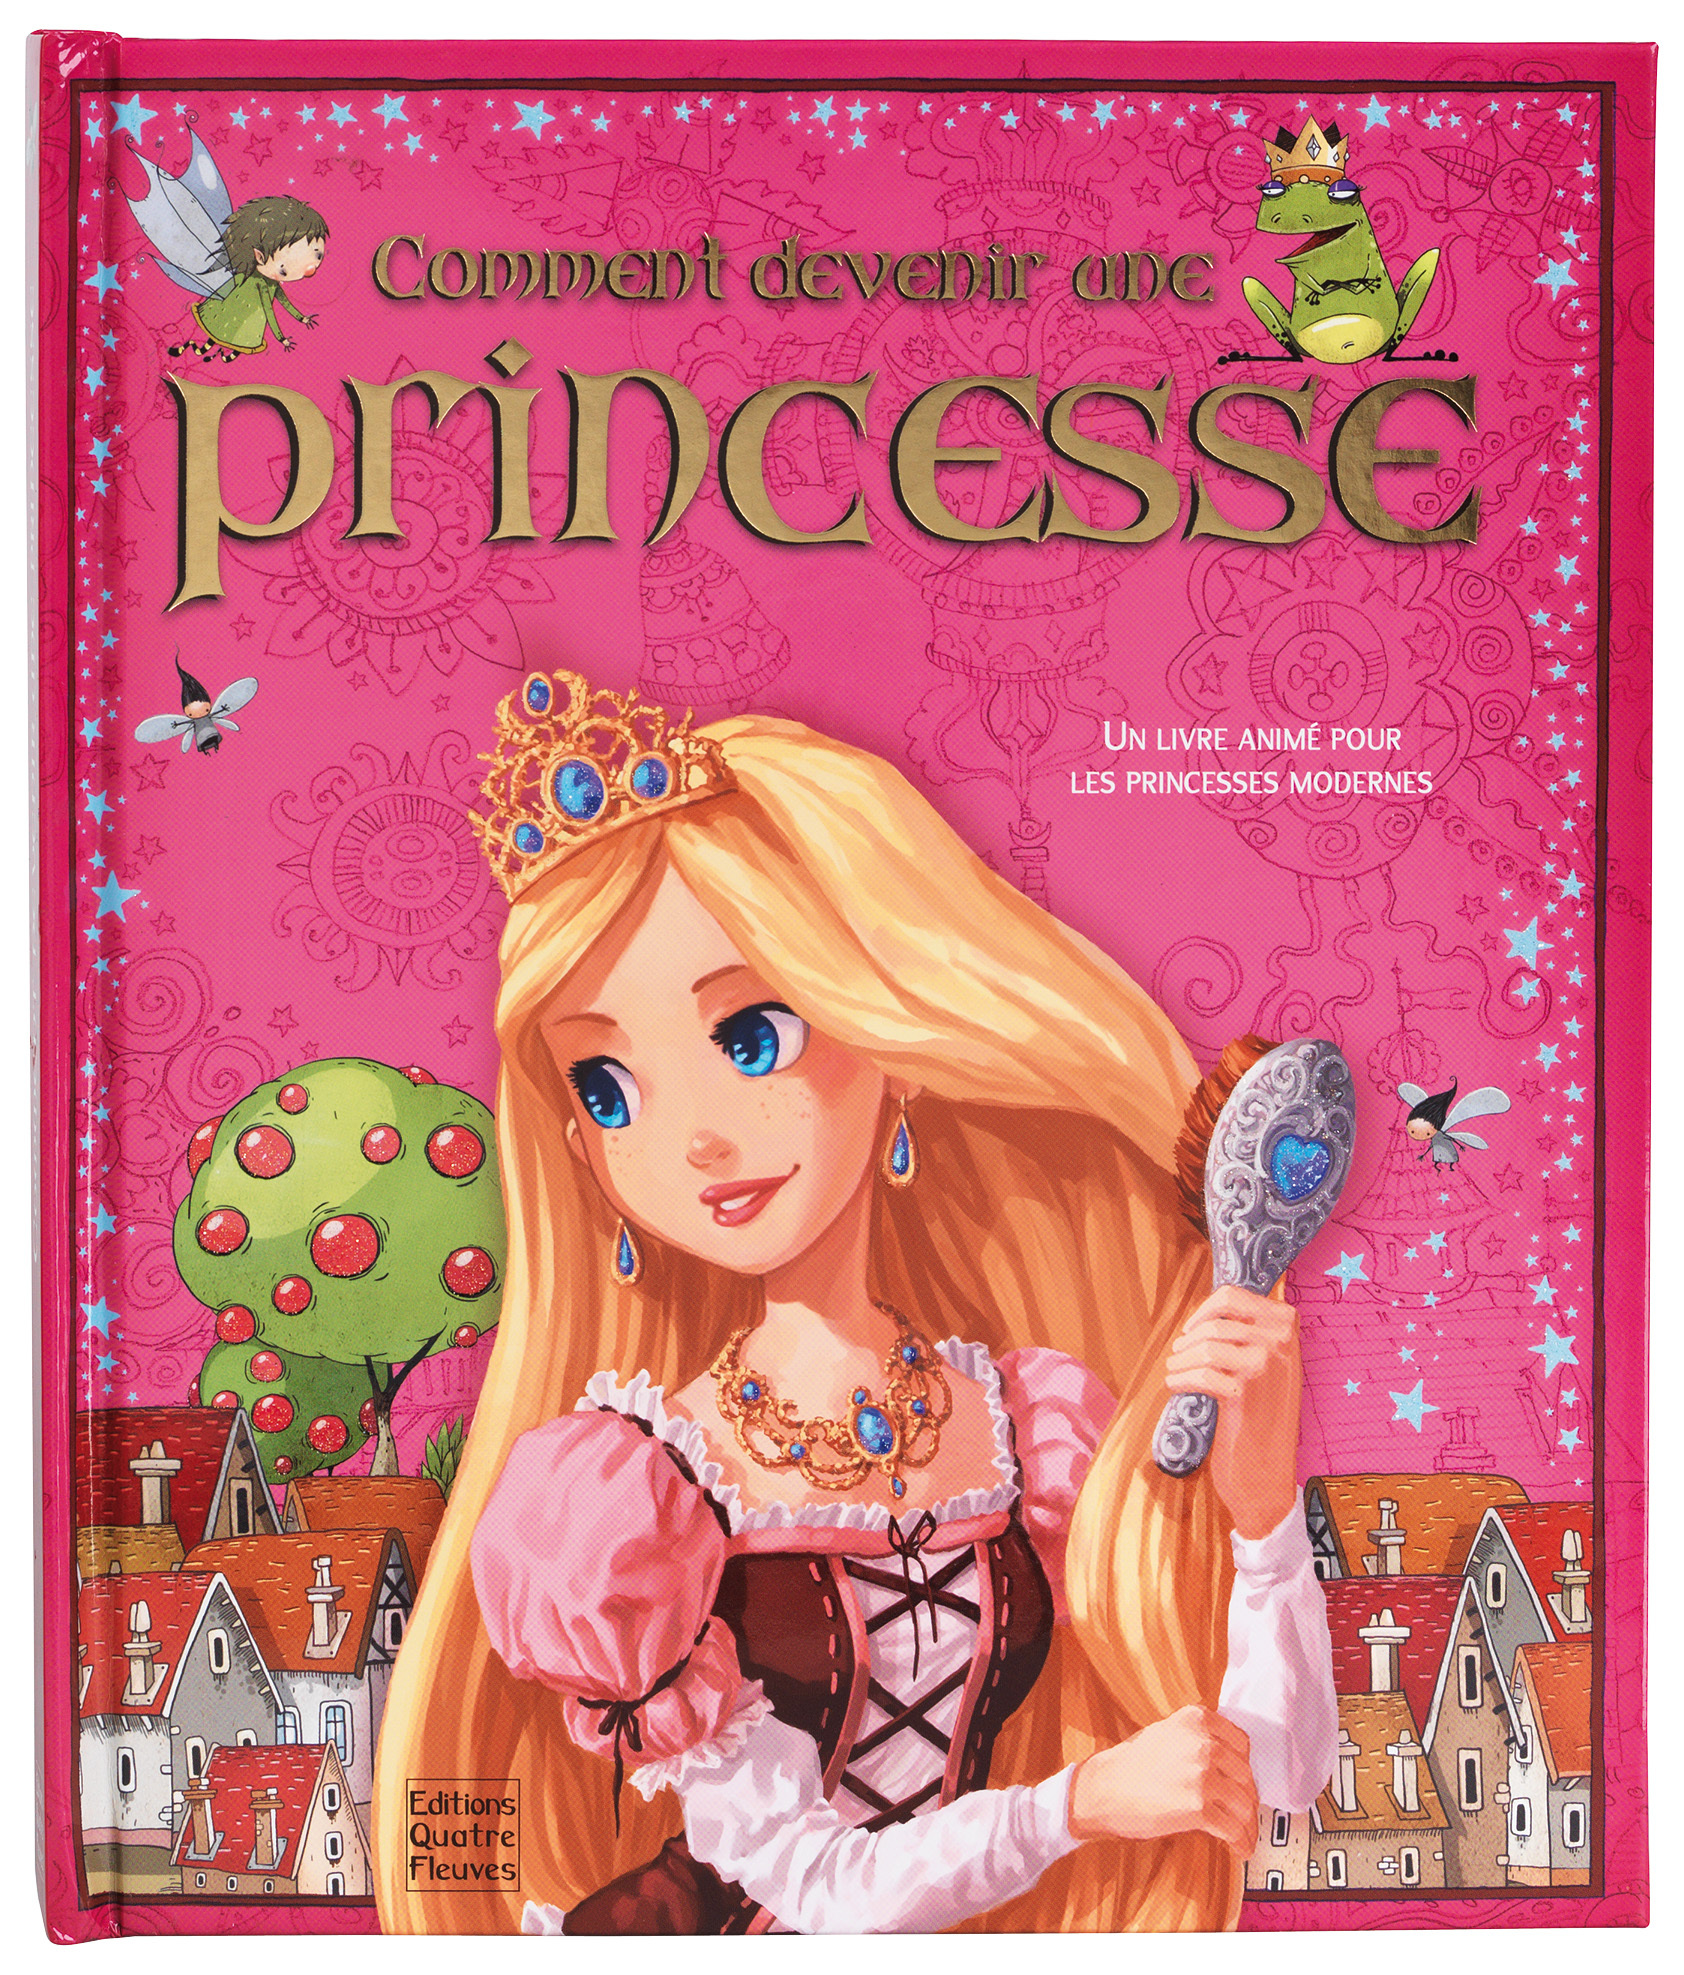 COMMENT DEVENIR UNE PRINCESSE